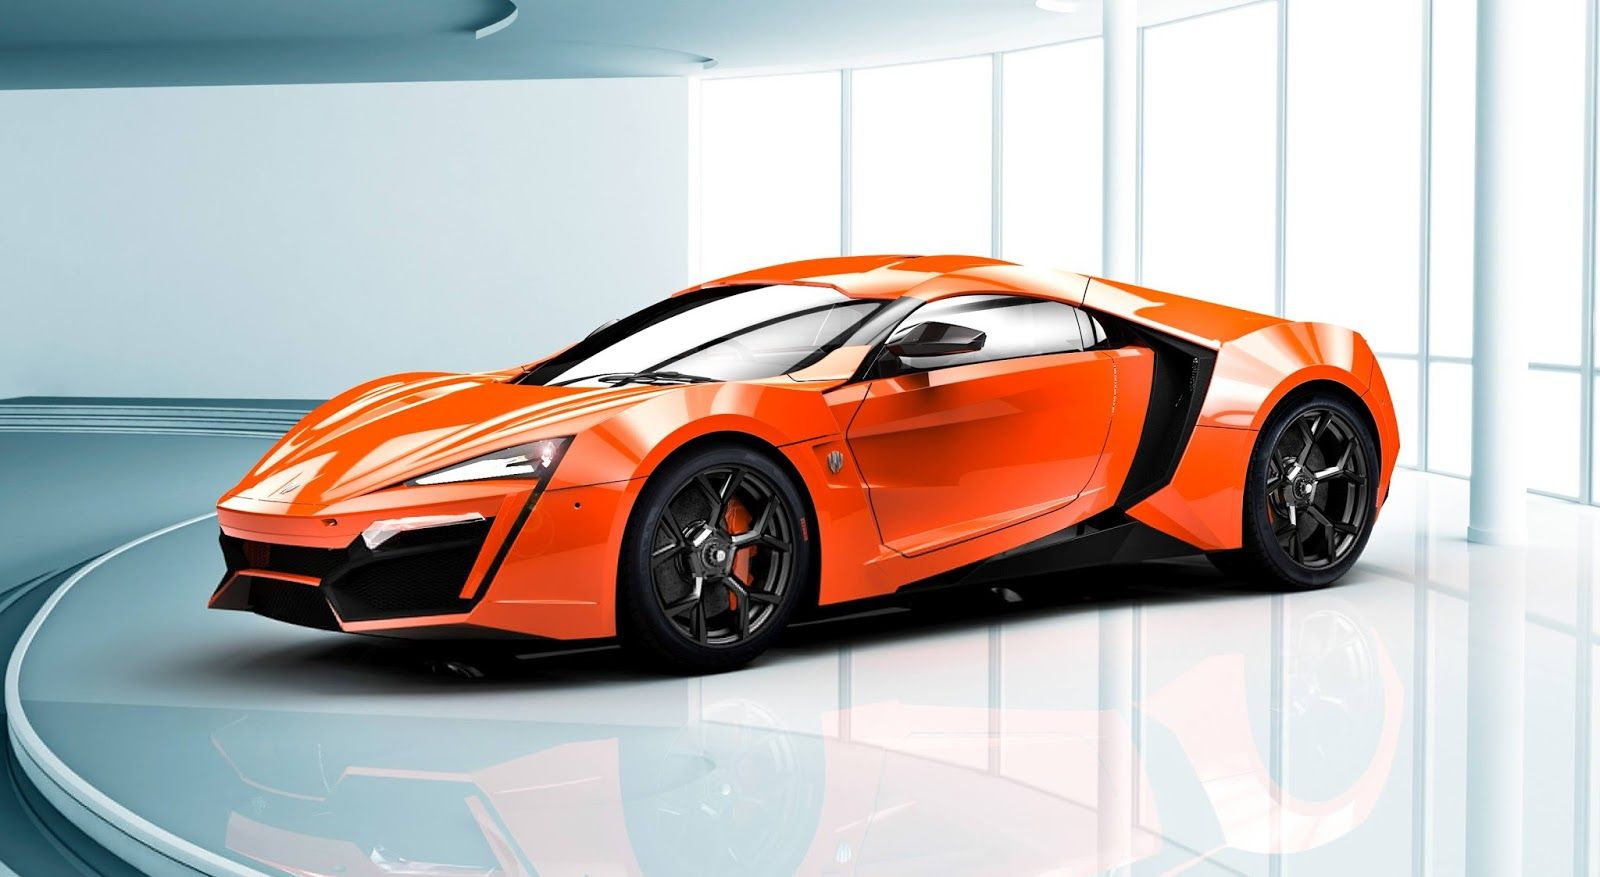 Price Of W Motors Lykan Hypersport Is 4 8 Million Performance Acceleration 0 100 Km X2f H 0 62 Mph 2 8 Seconds Lykan Hypersport Super Cars Expensive Cars